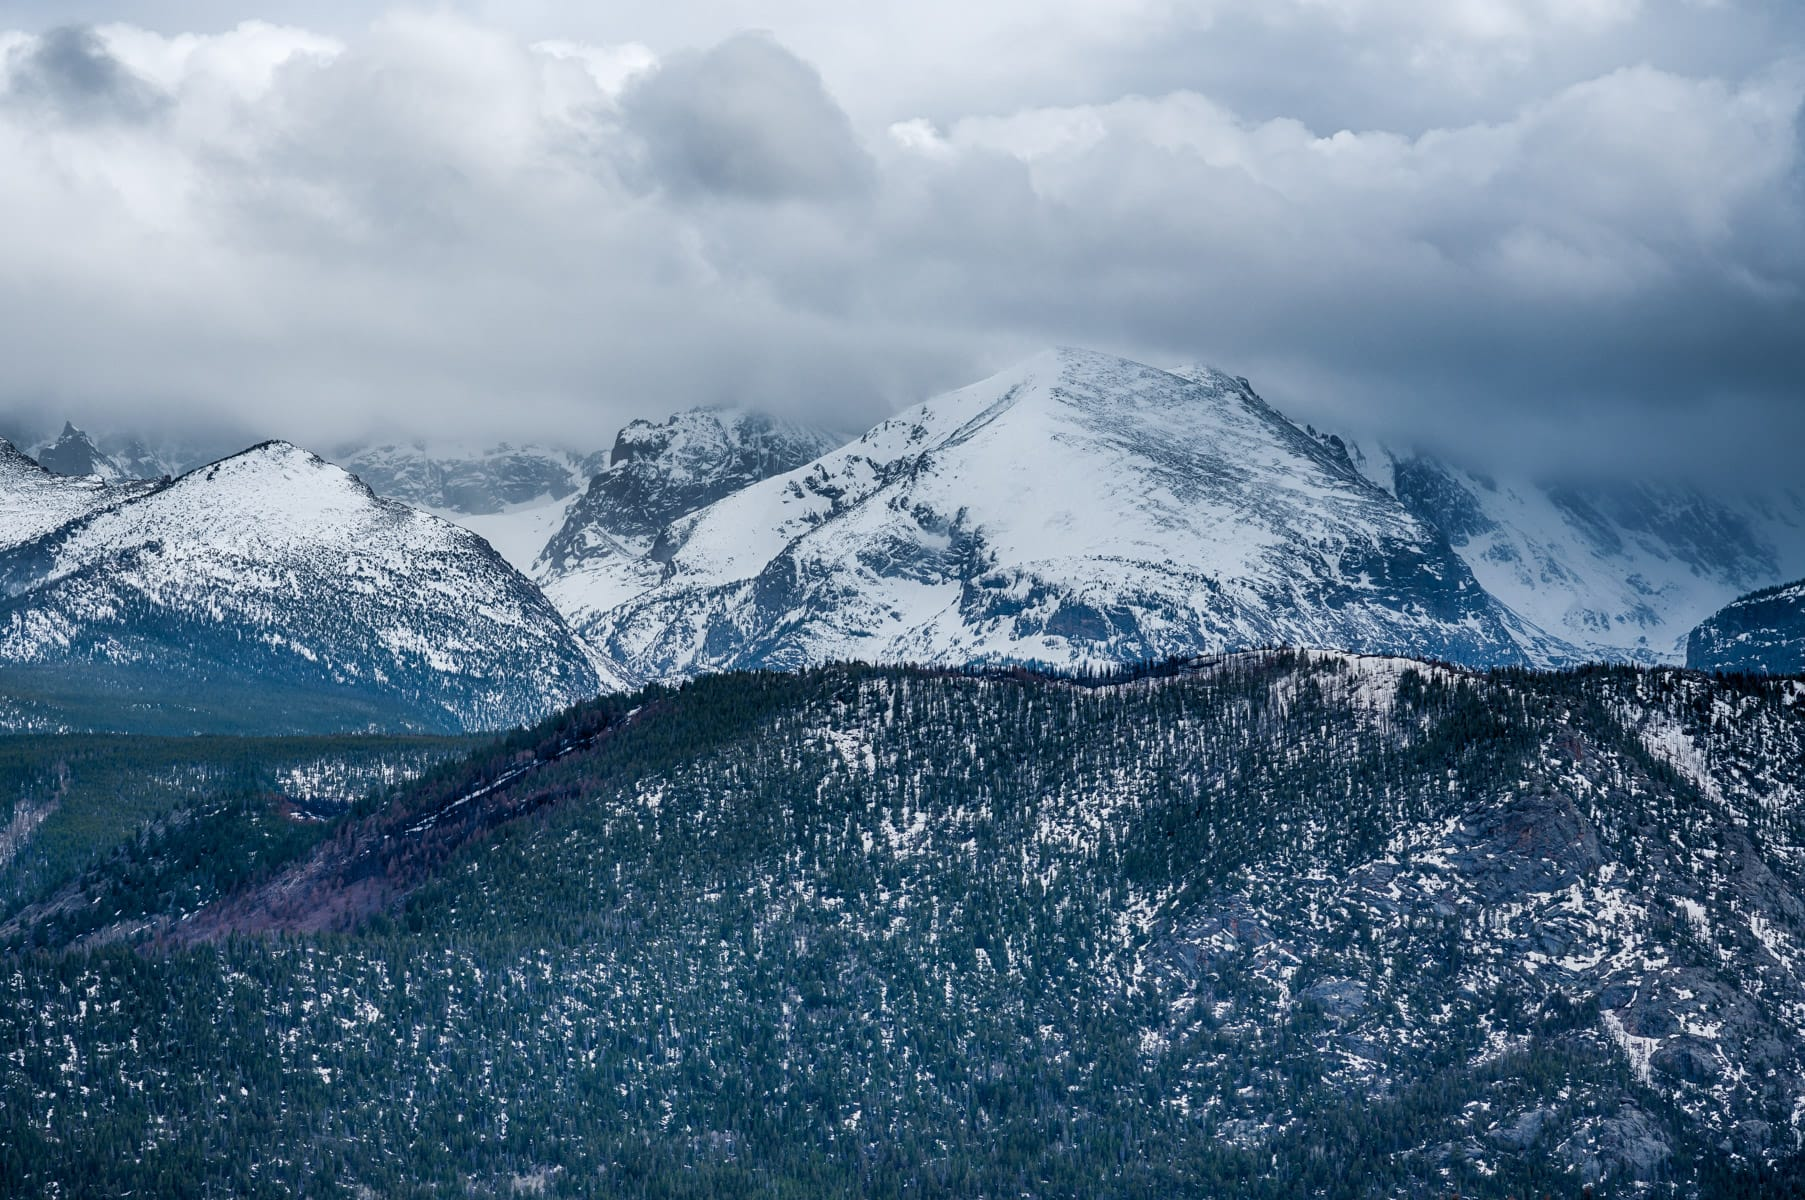 A late-winter snowstorm rolls in over Colorado's Rocky Mountain National Park.